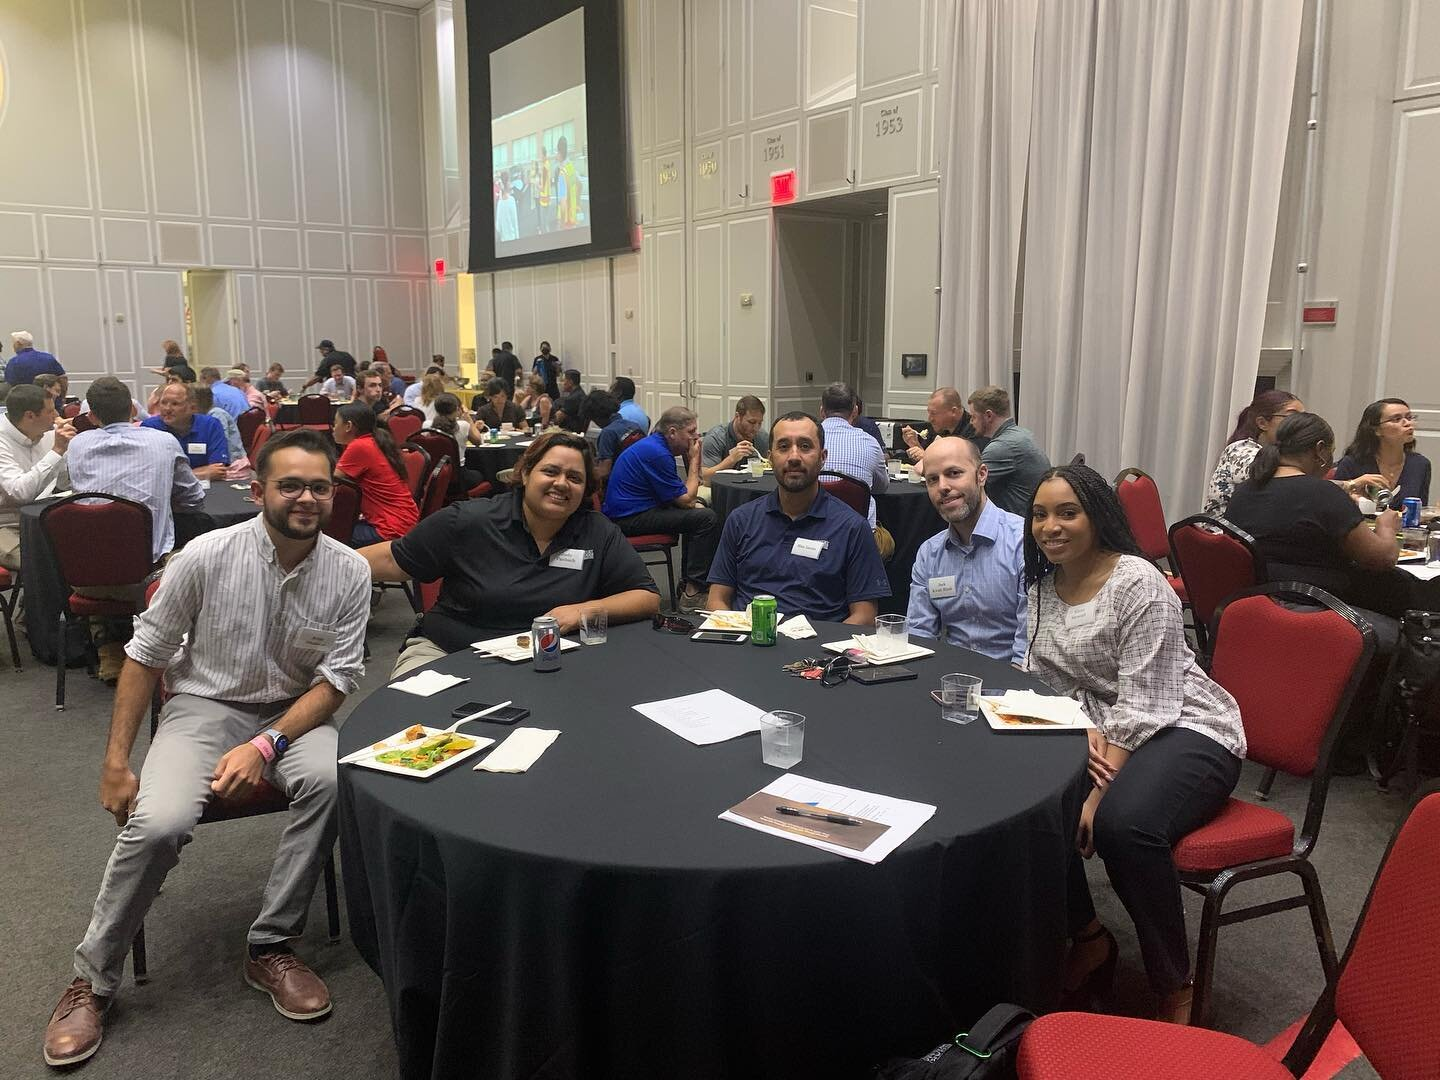 After 18 months since our last in person all company meeting, we are happy to step out from behind our screens and see everyone together again! #BuildingPeople #Buildingfor60 #Construction